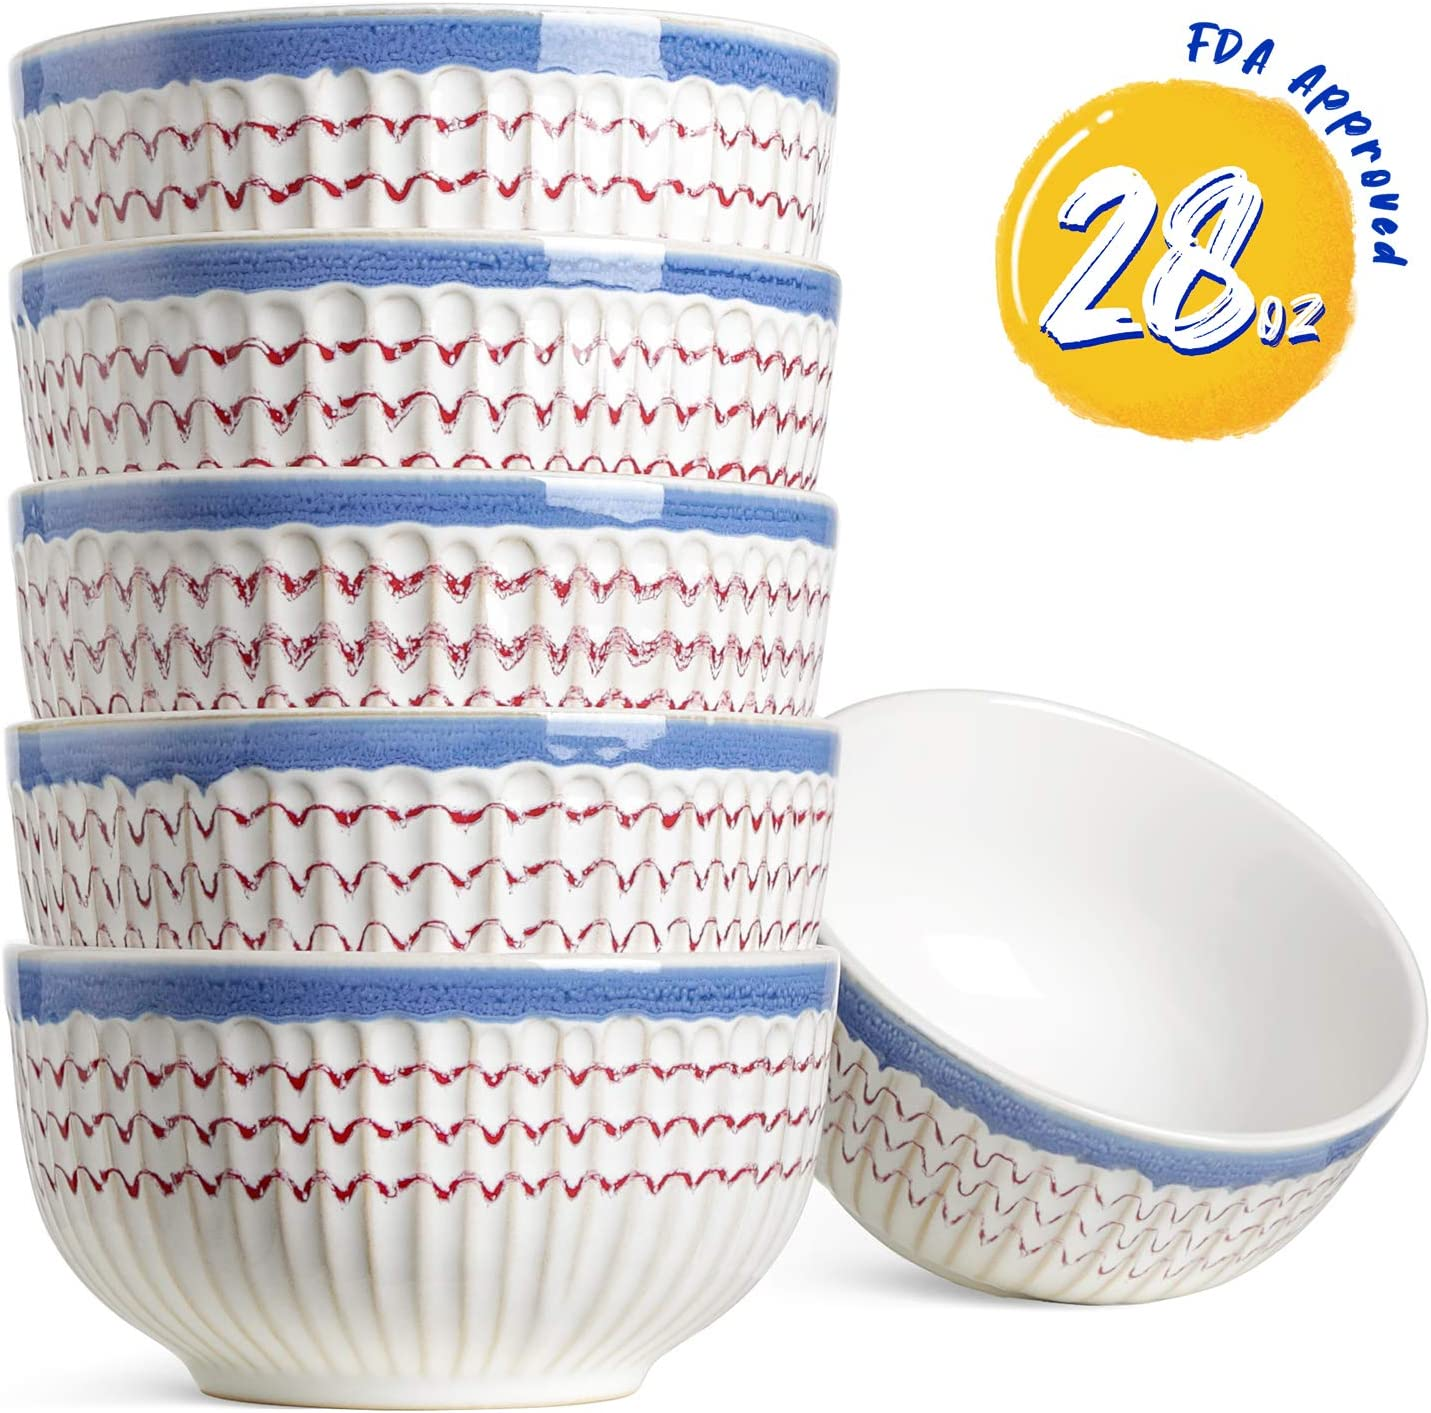 LE TAUCI Ceramic Soup Bowls, 28 Ounce Deep Bowls for Cereal, Salad, Chili, Set of 6, Boho Style